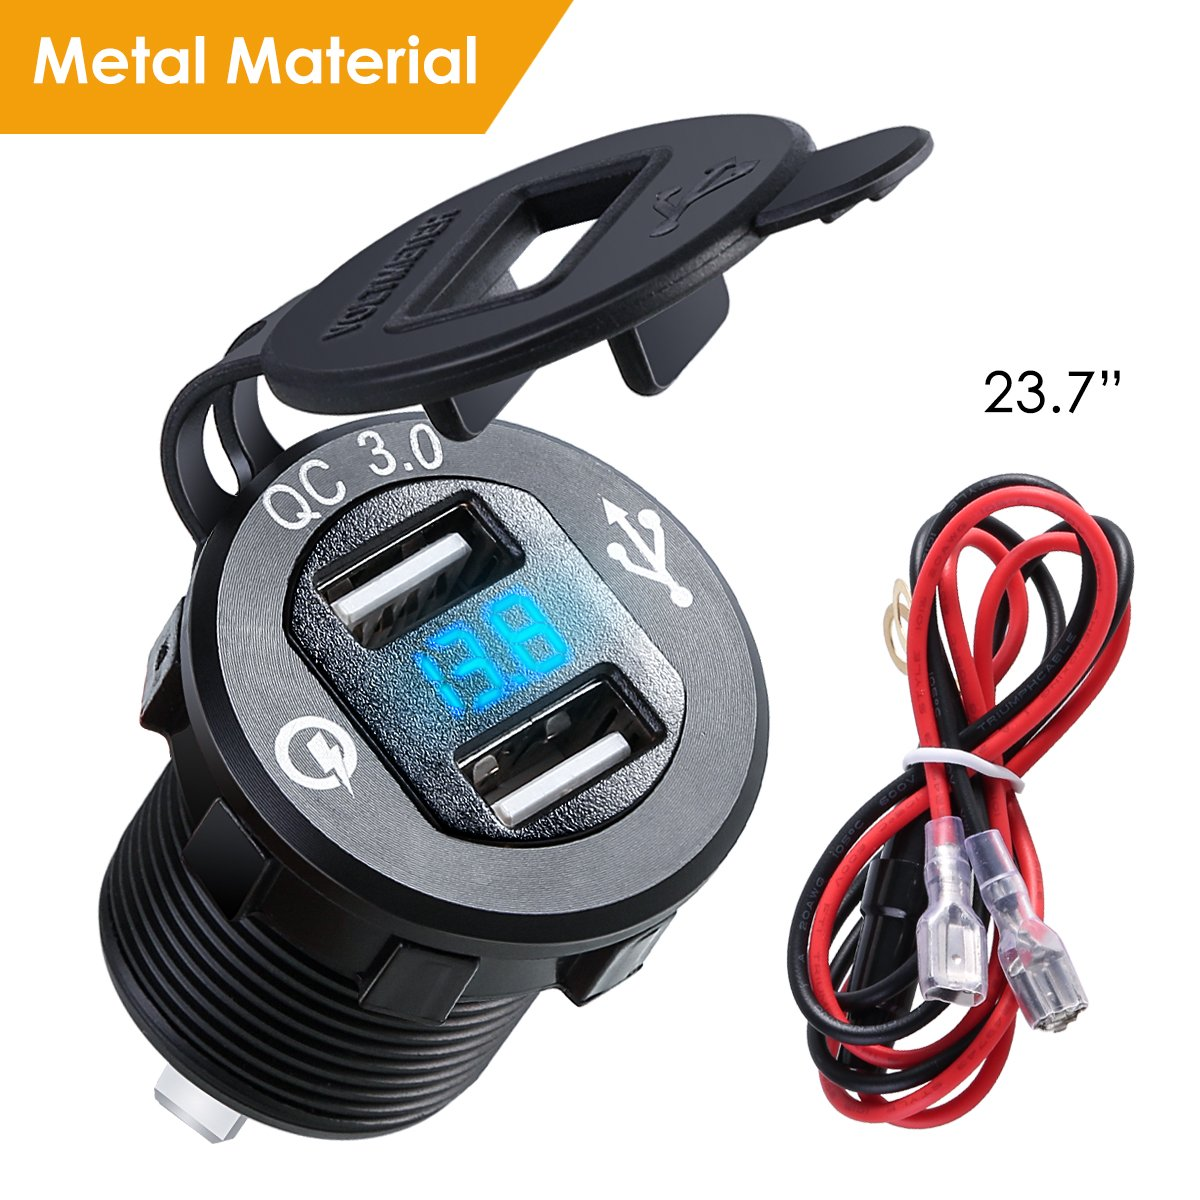 Dual USB Charger Socket Power Outlet with Digital Voltmeter QC 3.0 5v//1.5A Dual USB Port with LED Voltage Meter Display for 12V//24V Marine Car Motorcycle,Motorcycle Accessories Dealpeak